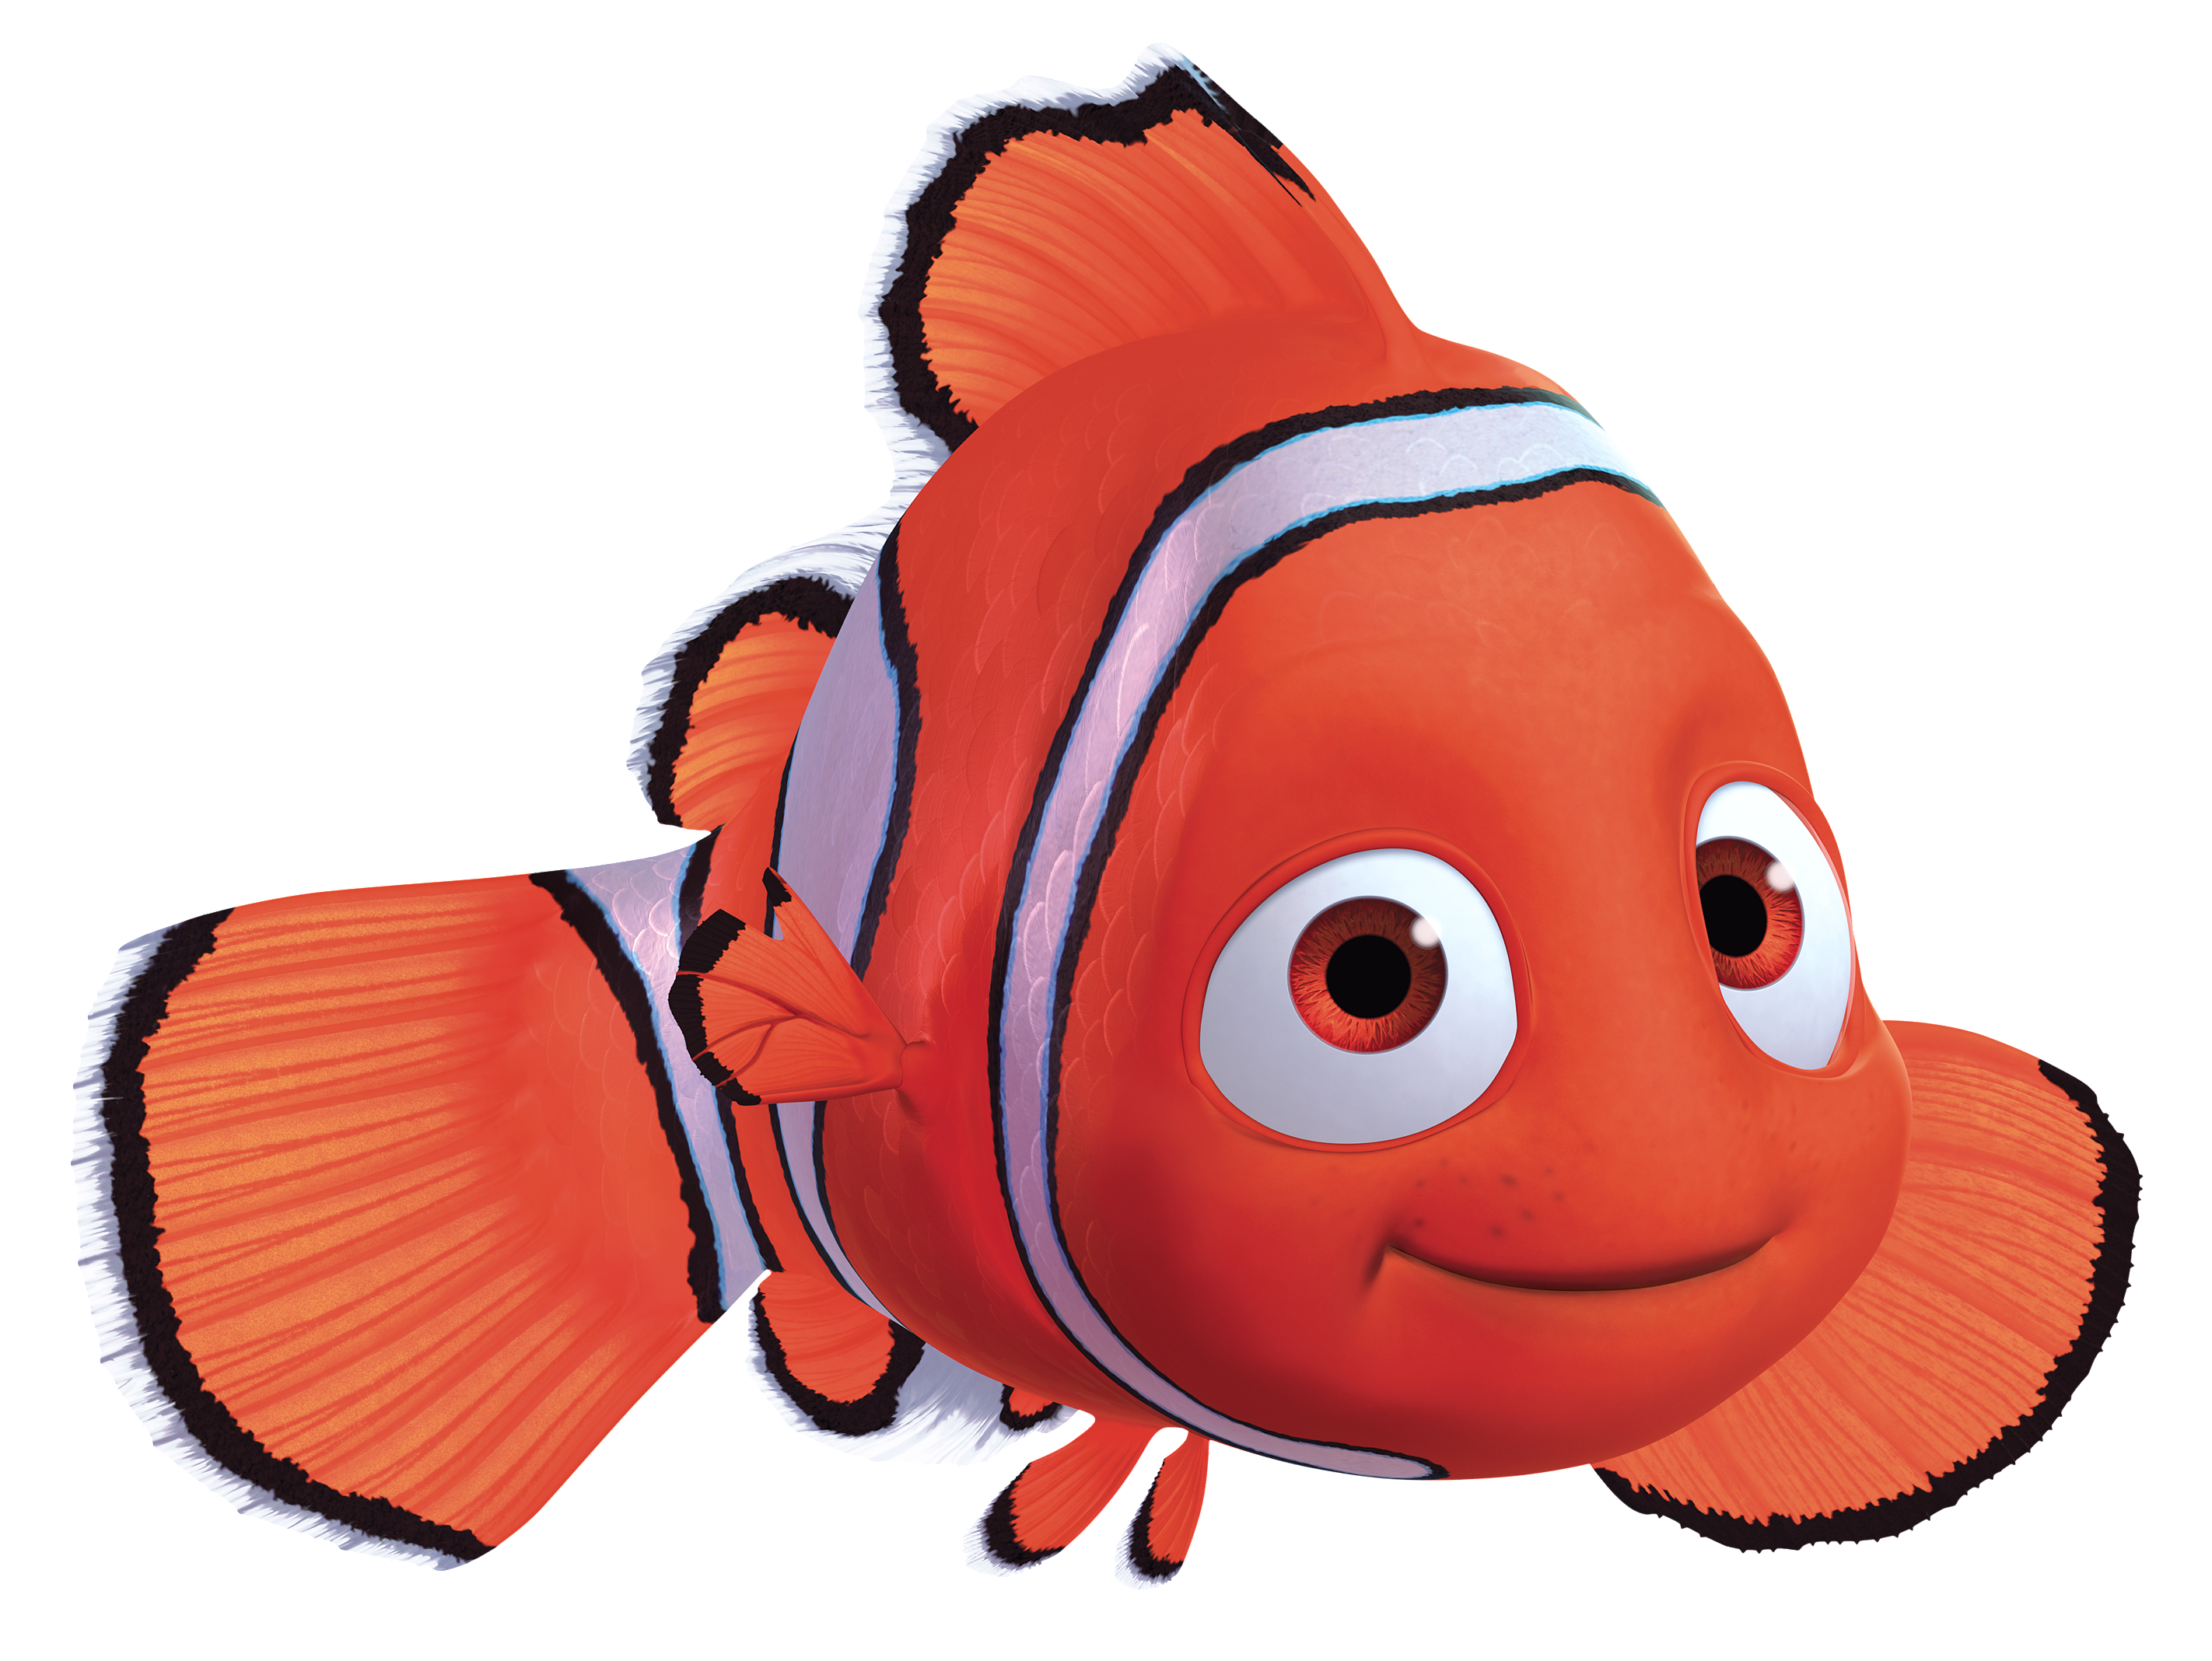 Finding Nemo Characters Dory Clipart Free Clip Art Images.